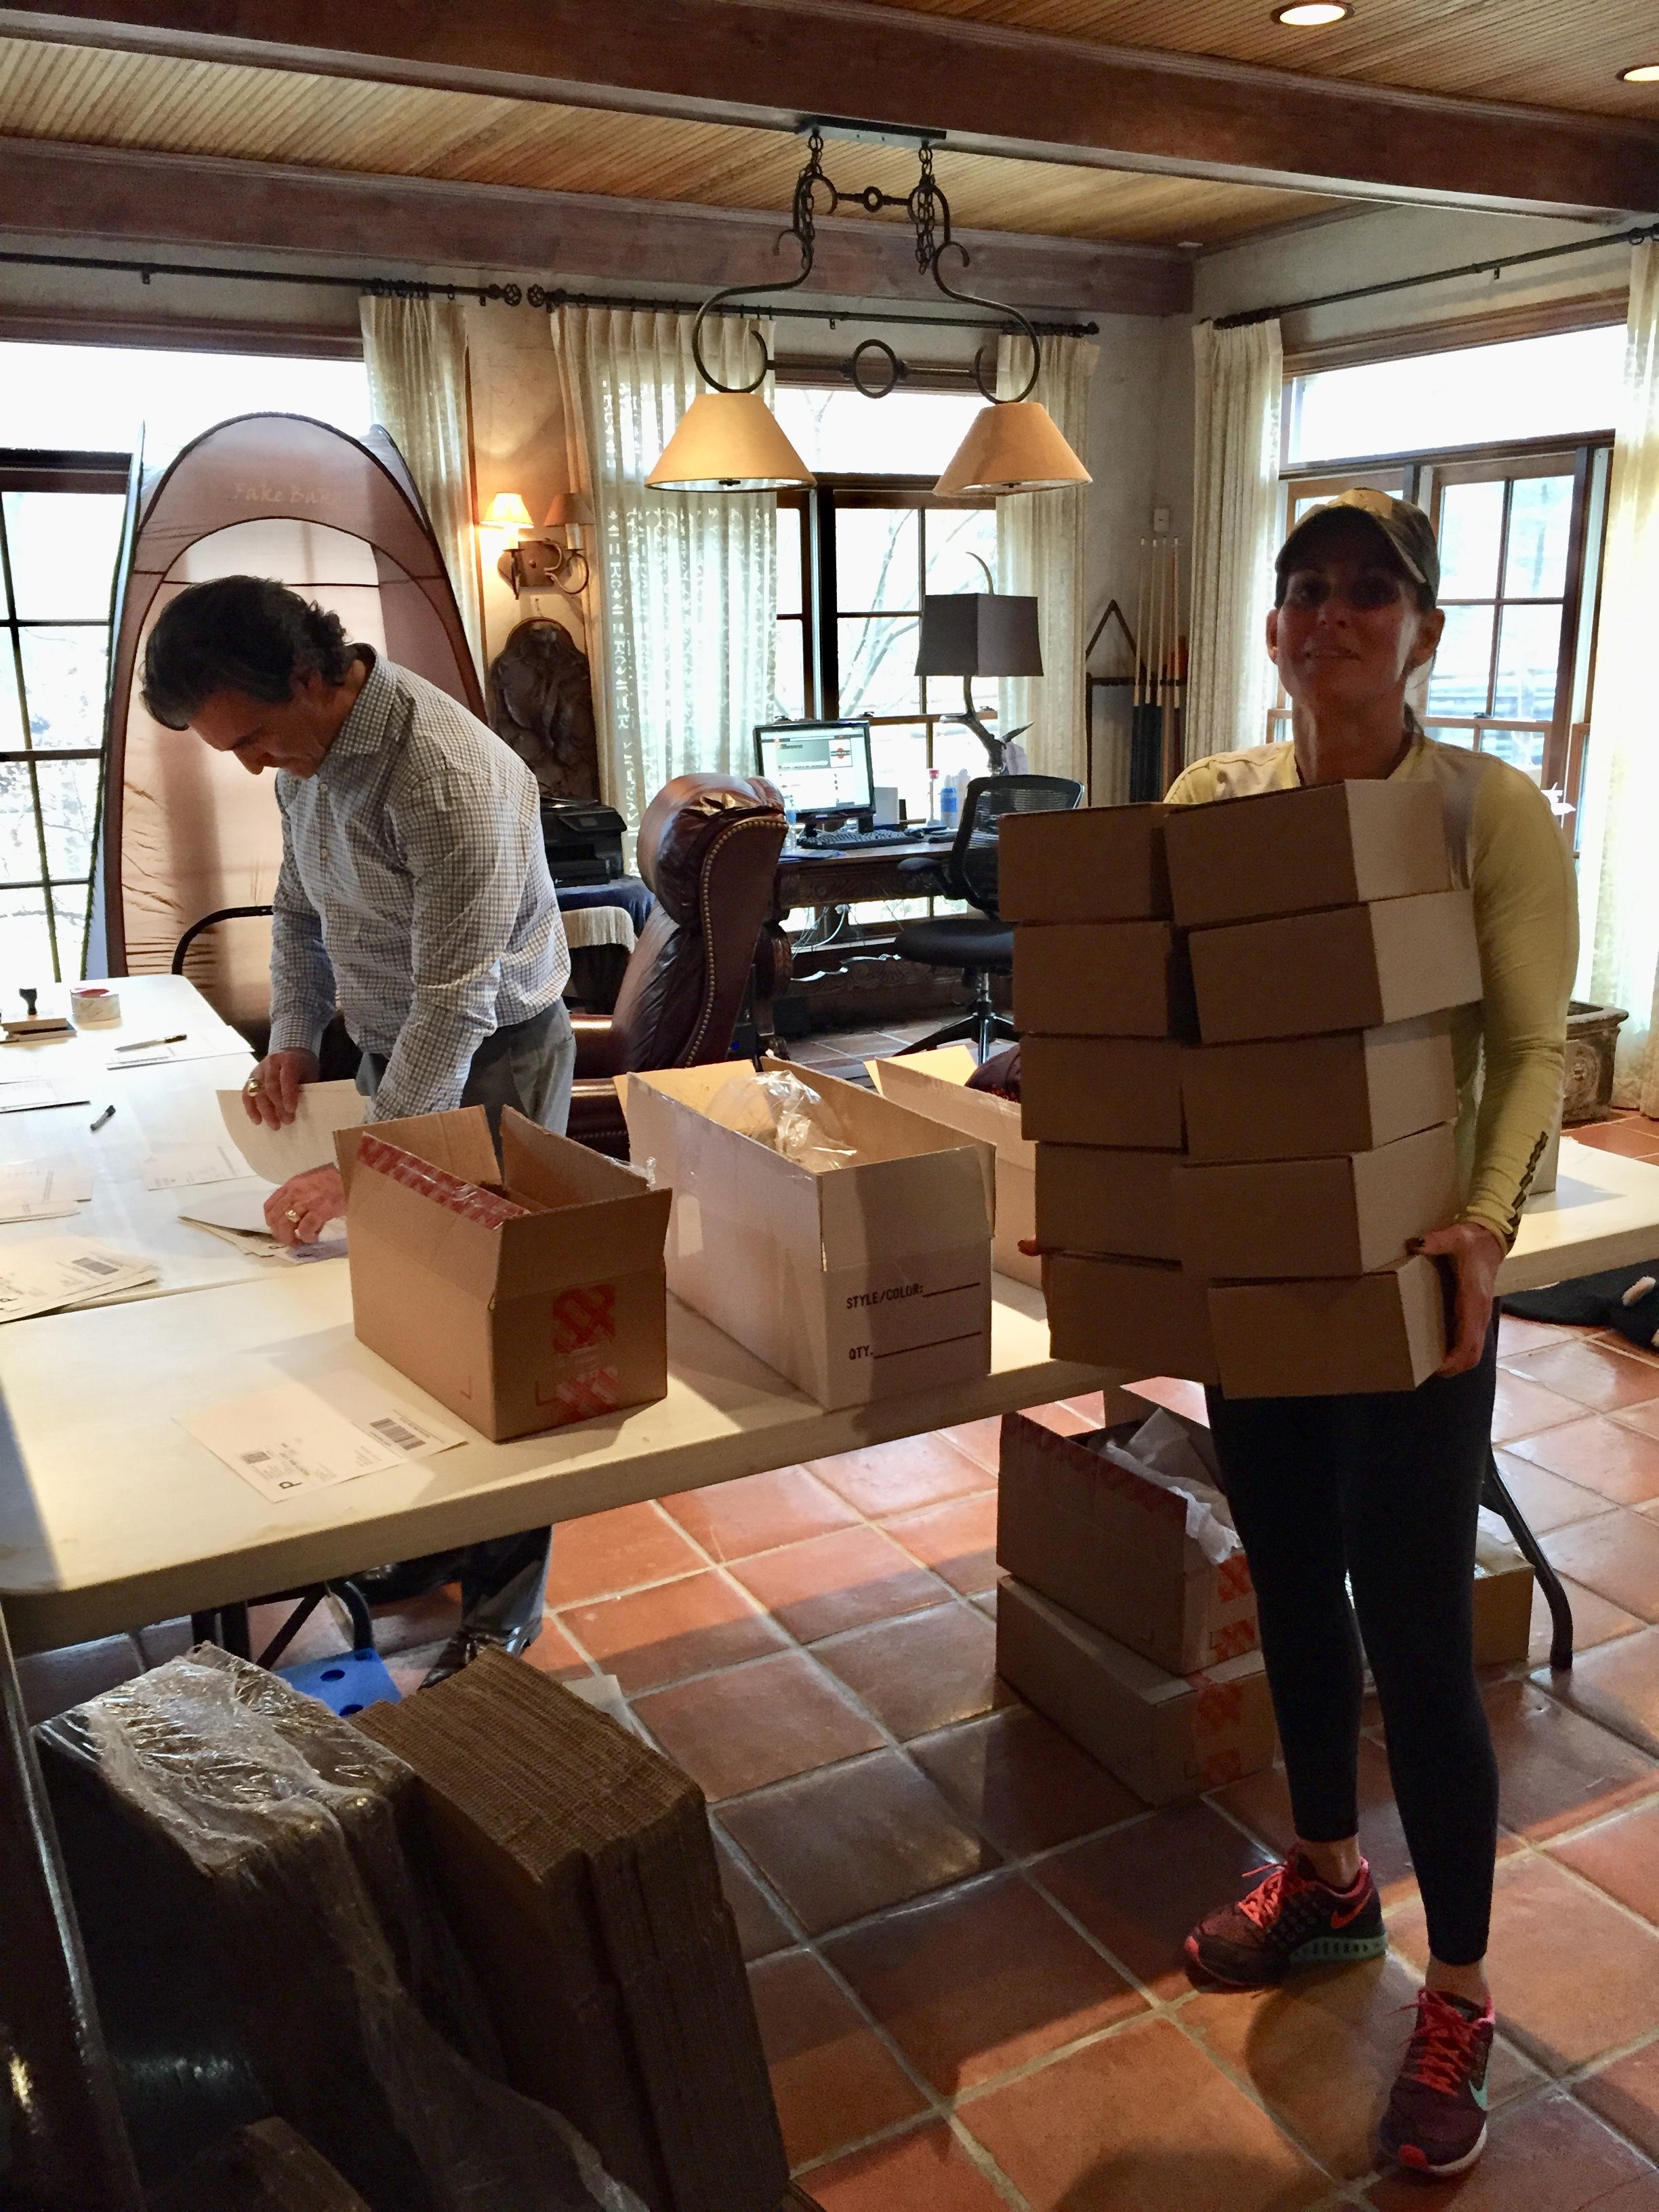 Mom and Pop packing boxes in the basement office March 10, 2015.